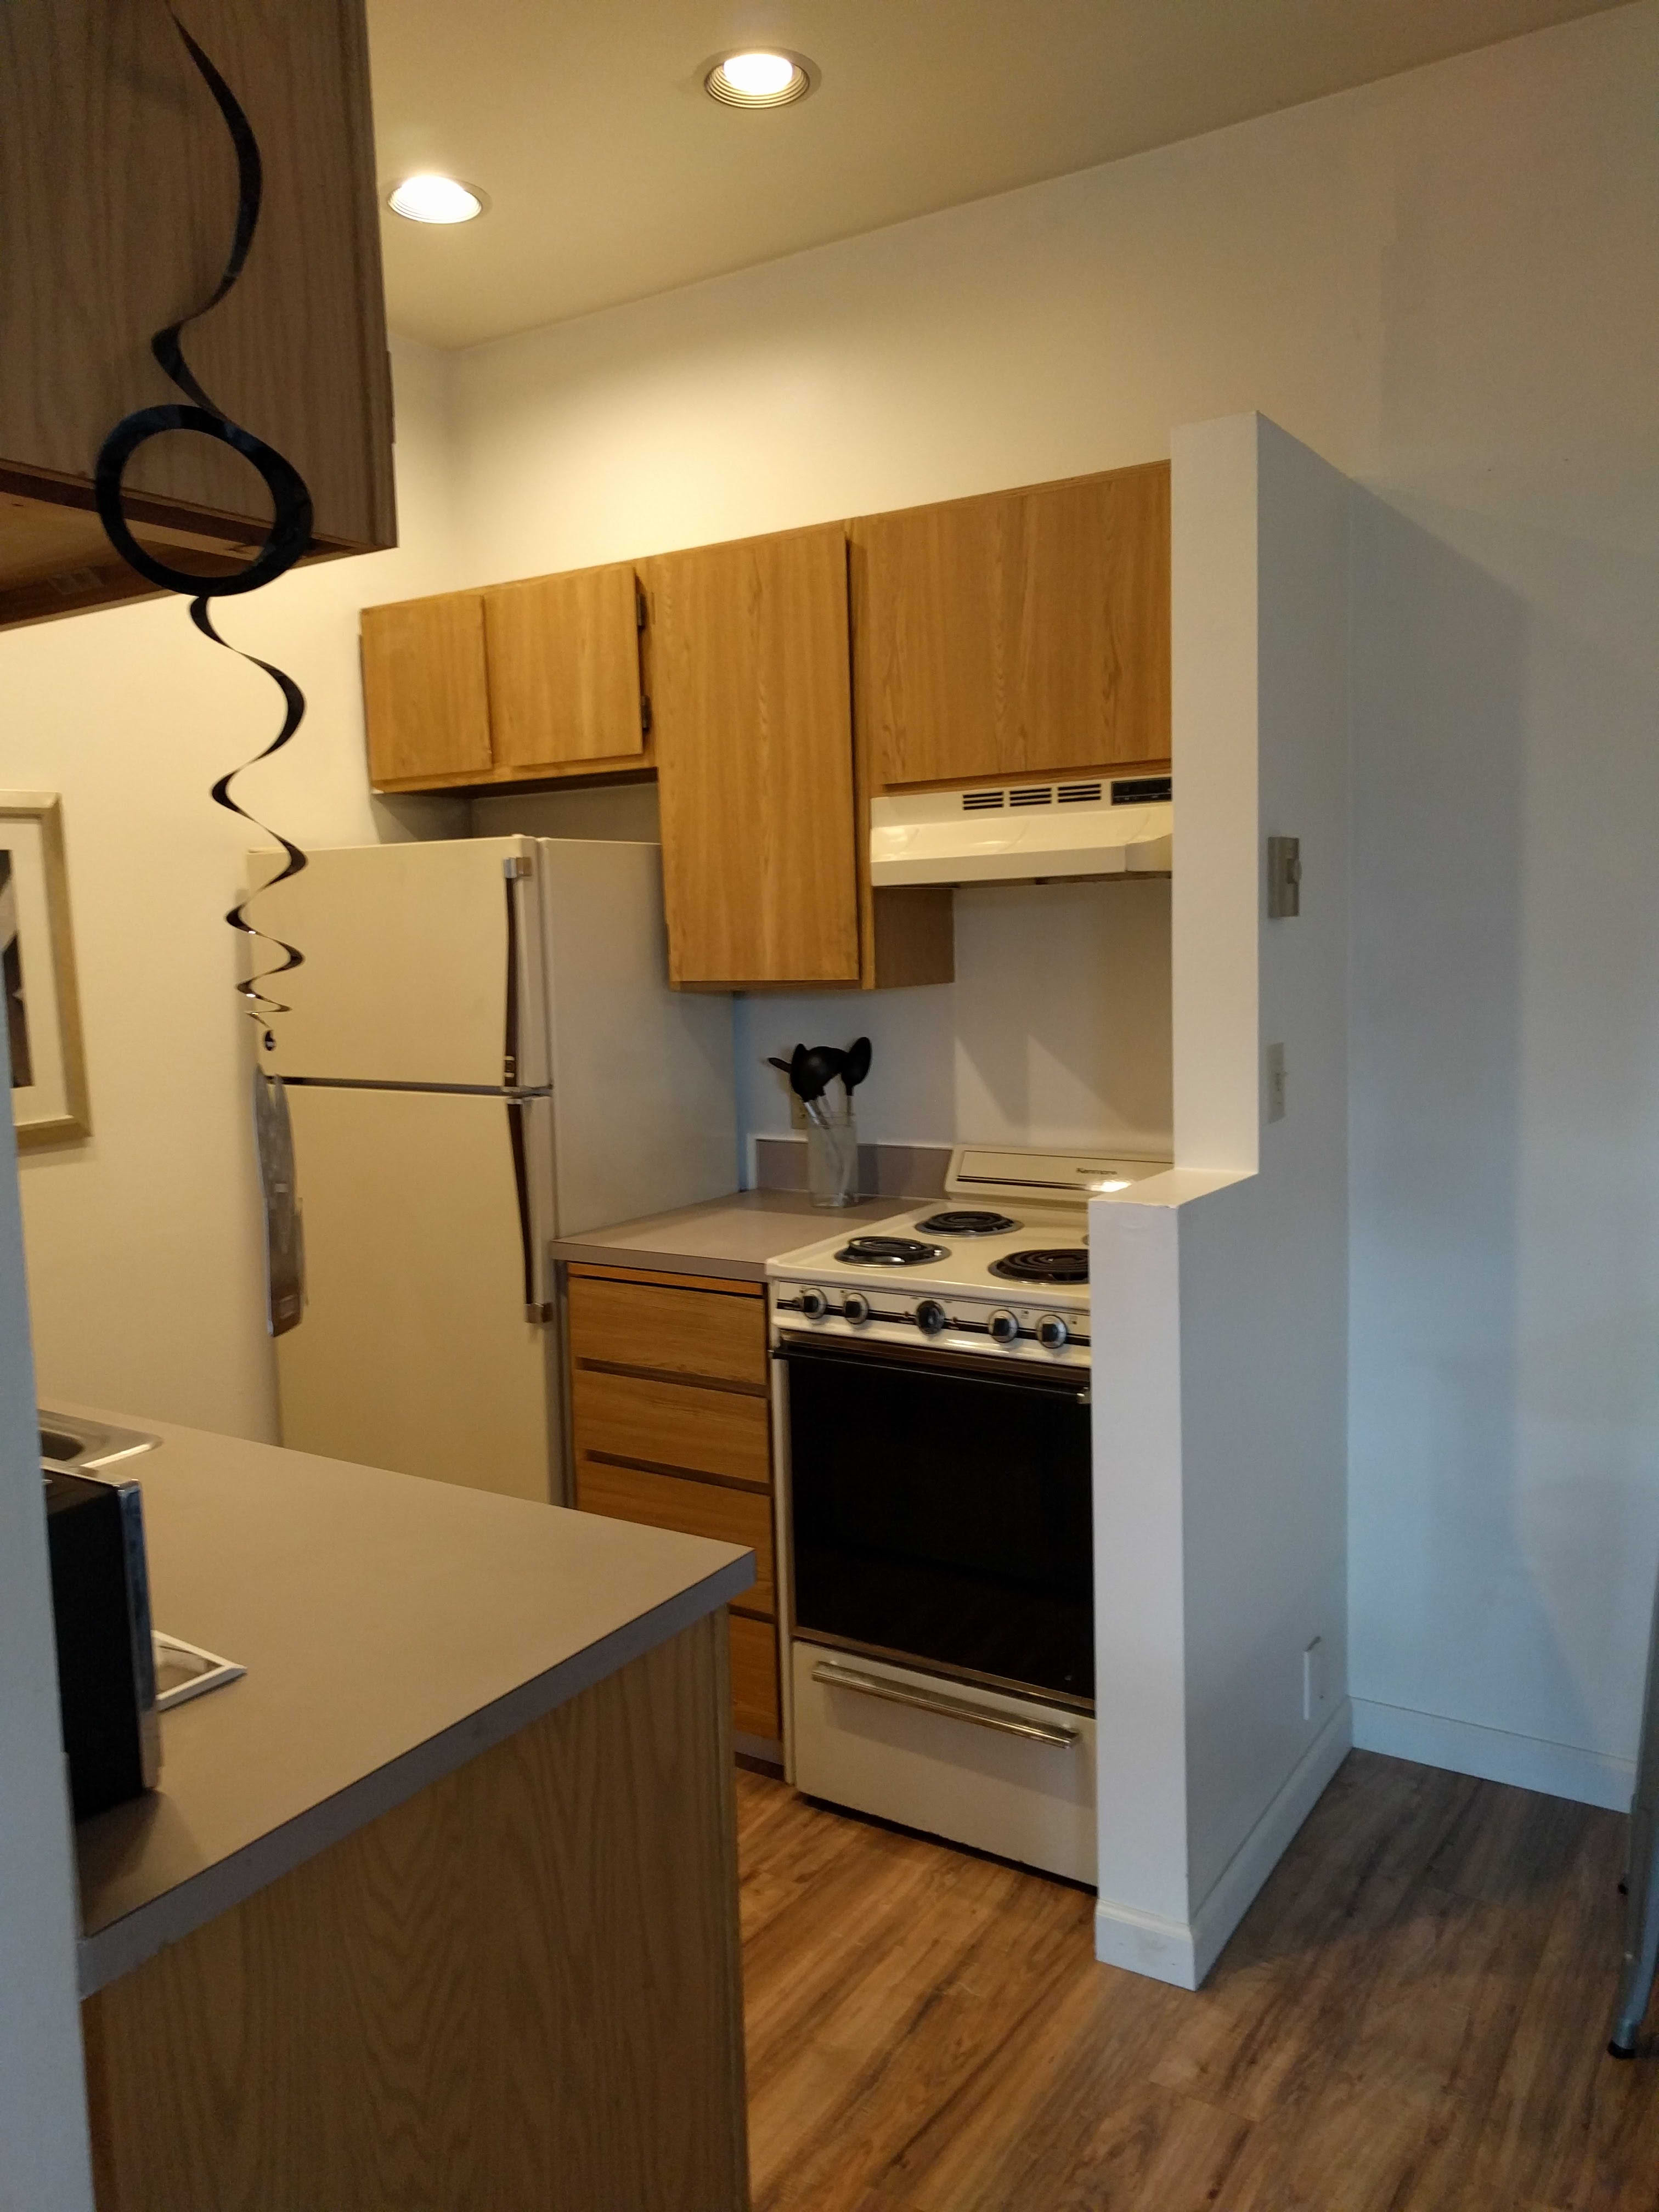 Before After Gut Remodel Of A Studio Apartment Kitchen